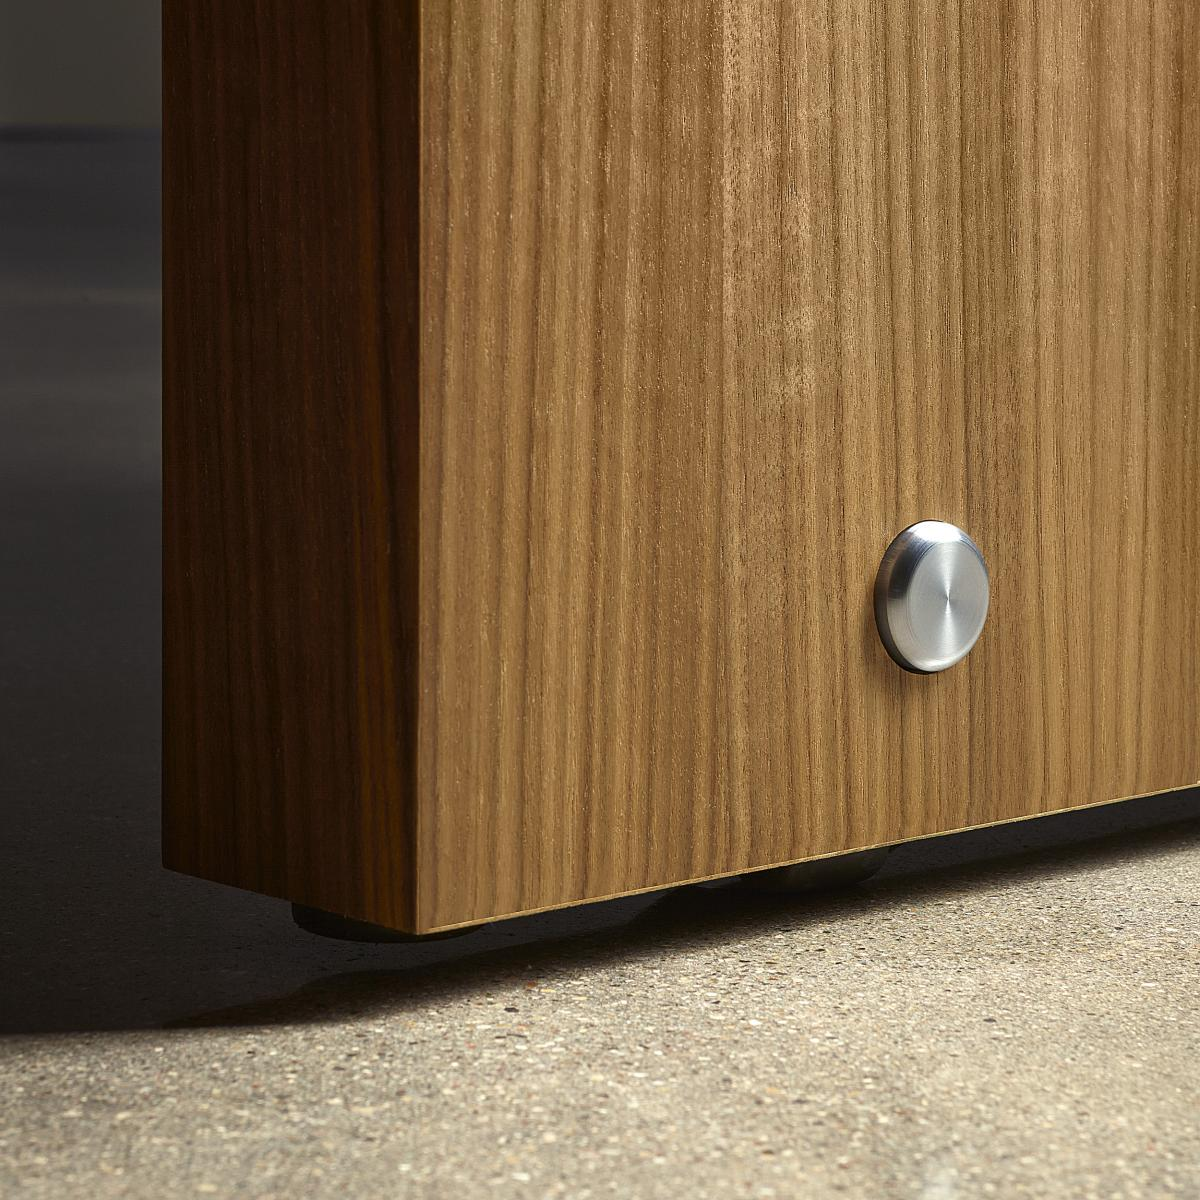 Casters concealed in a slim profile allow shared spaces to be reconfigured with ease.